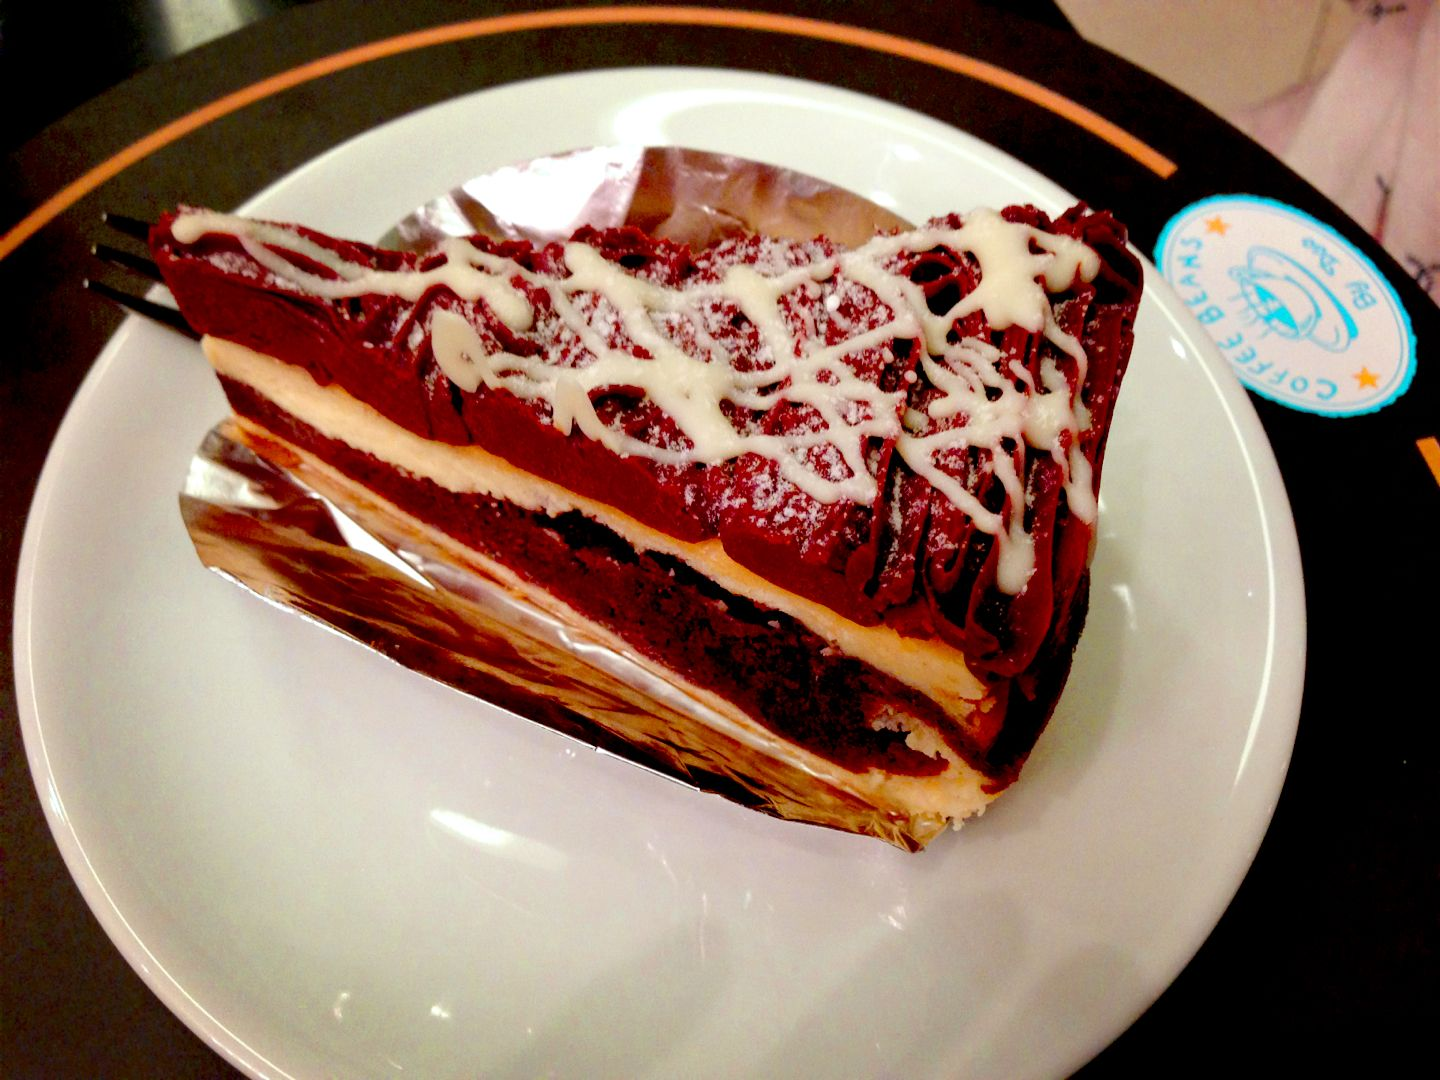 Coffee Bean By Dao One Of The Best Cake In Bangkok Recommend Coffee Merriange White Chocolate Cake White Chocolate Cake Food Desserts